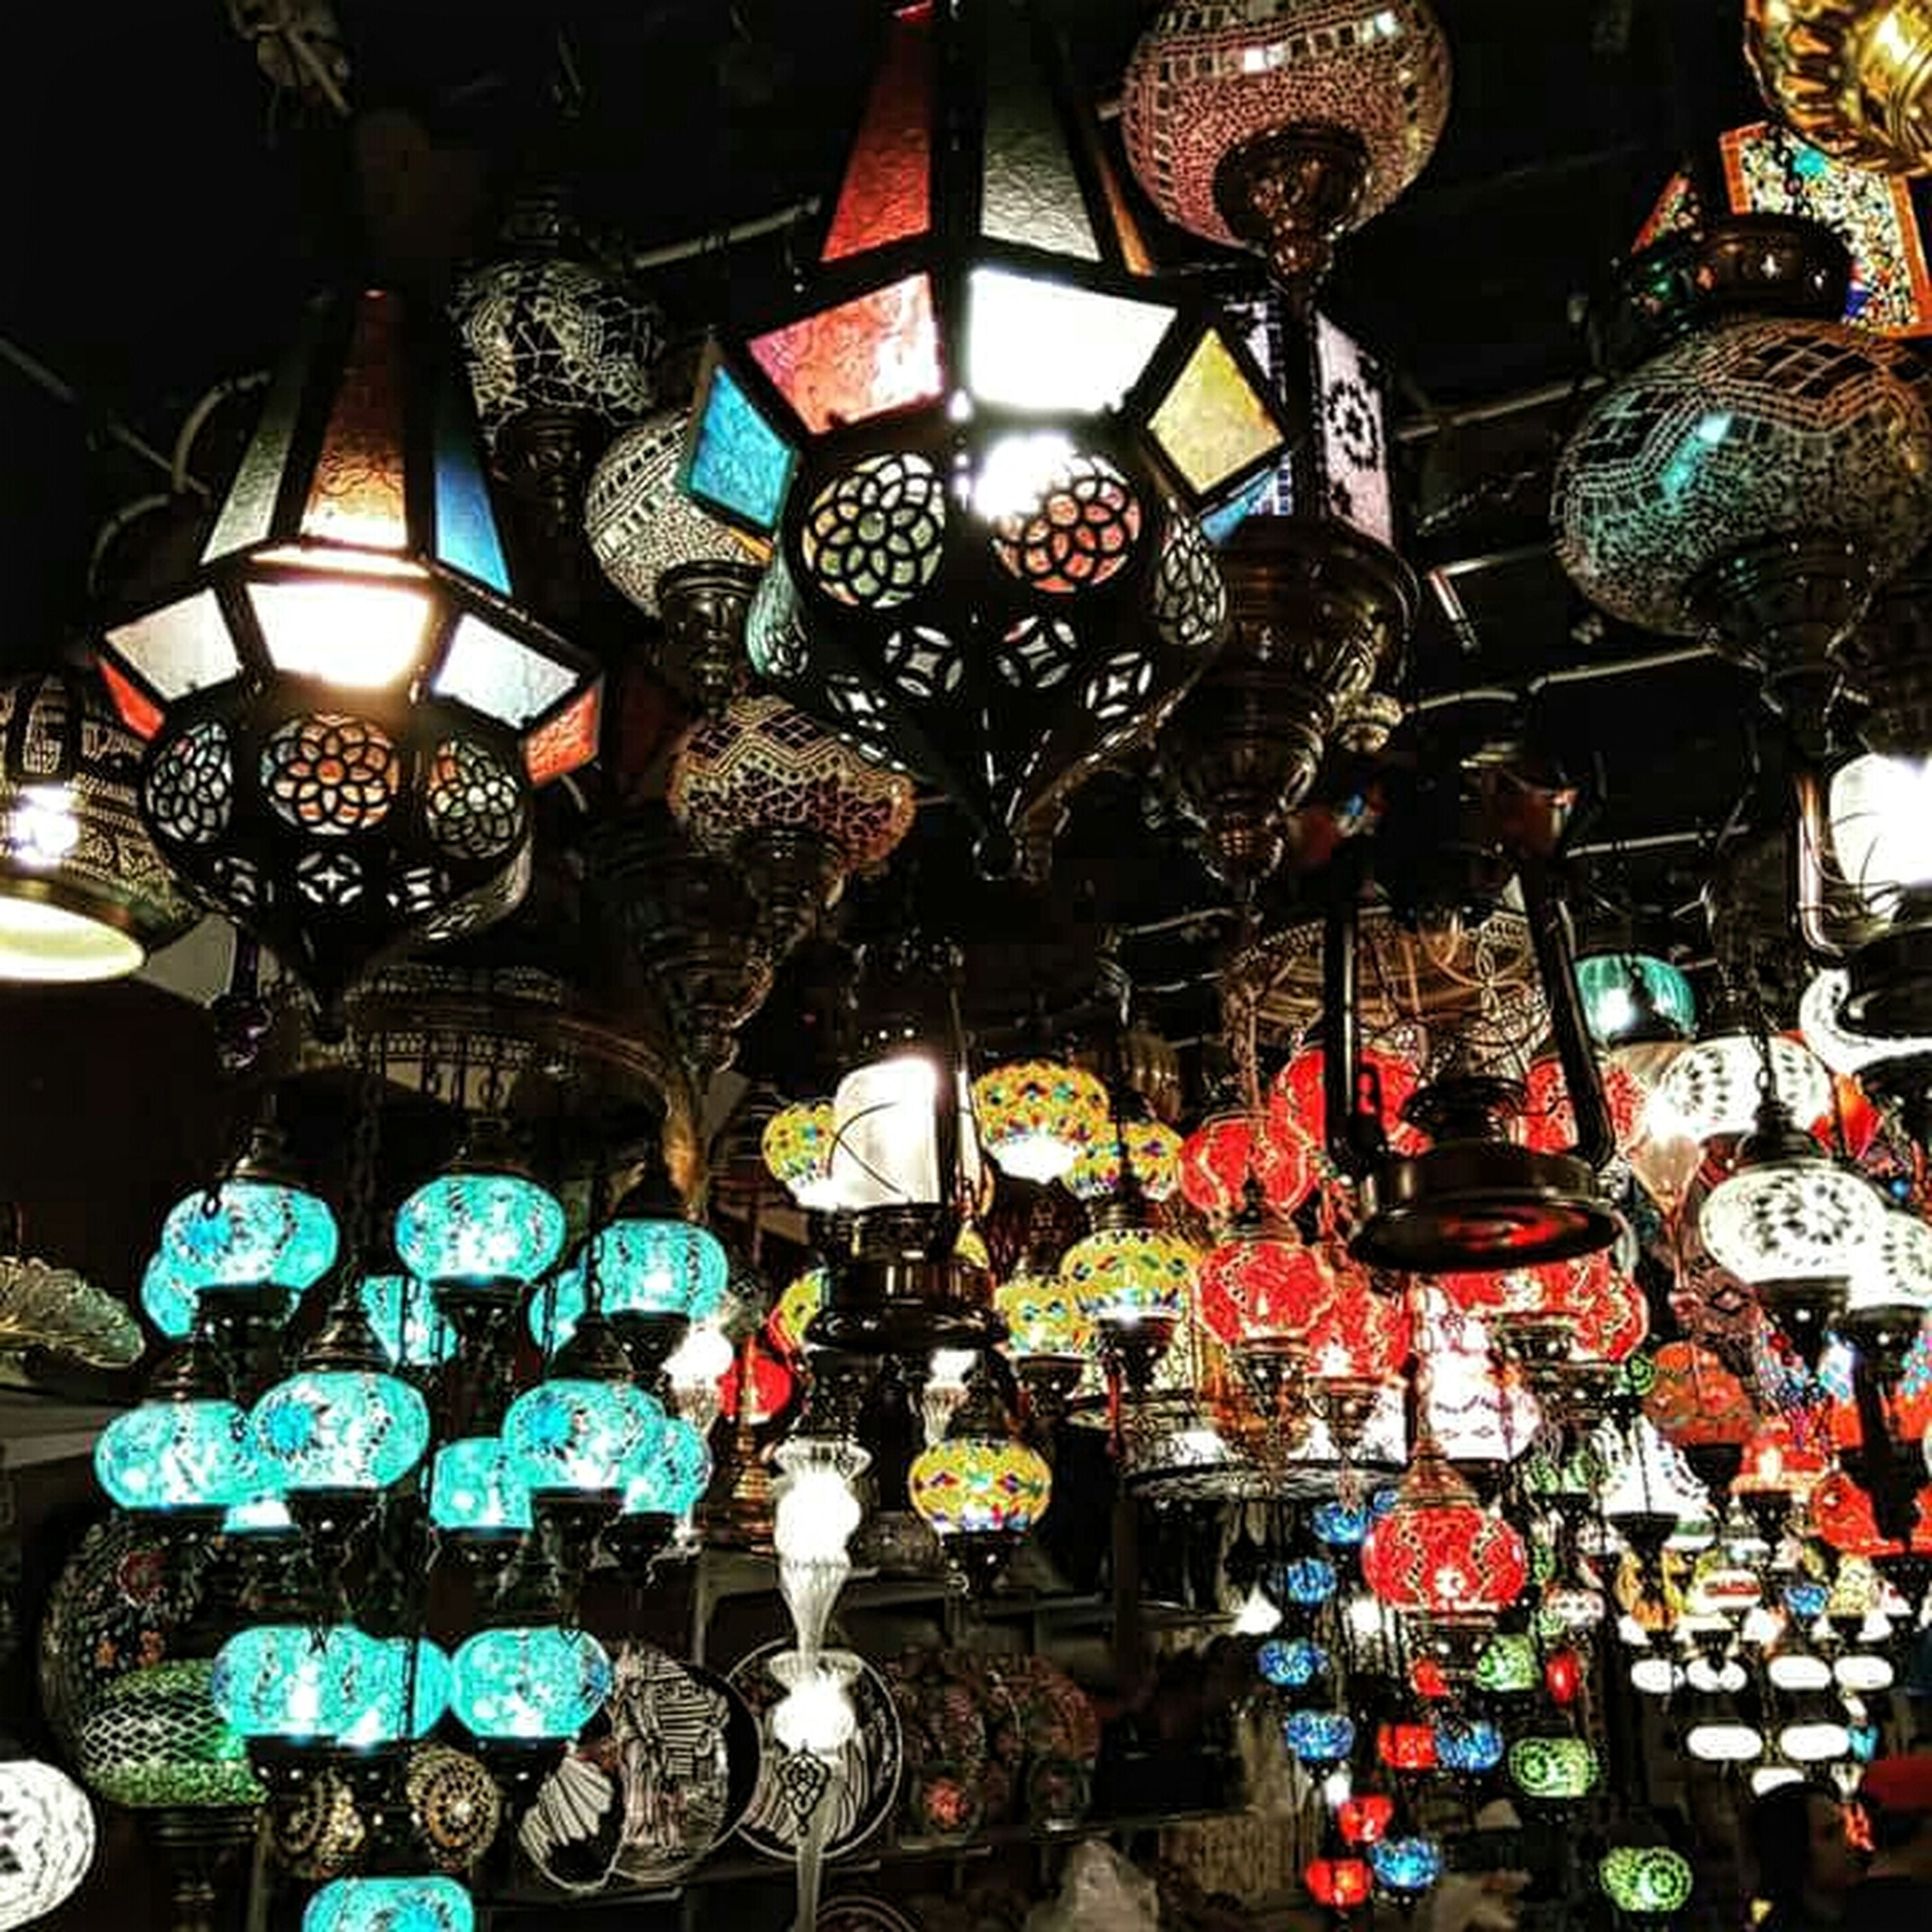 Taken from my Sony Xperia XA at Bab Al Bahrain Souq Illuminated Lights And People Indoors  Hanging Souq Market Mobilephotography Xperiaphotography XperiaXADual ArabianLights Arabic Culture